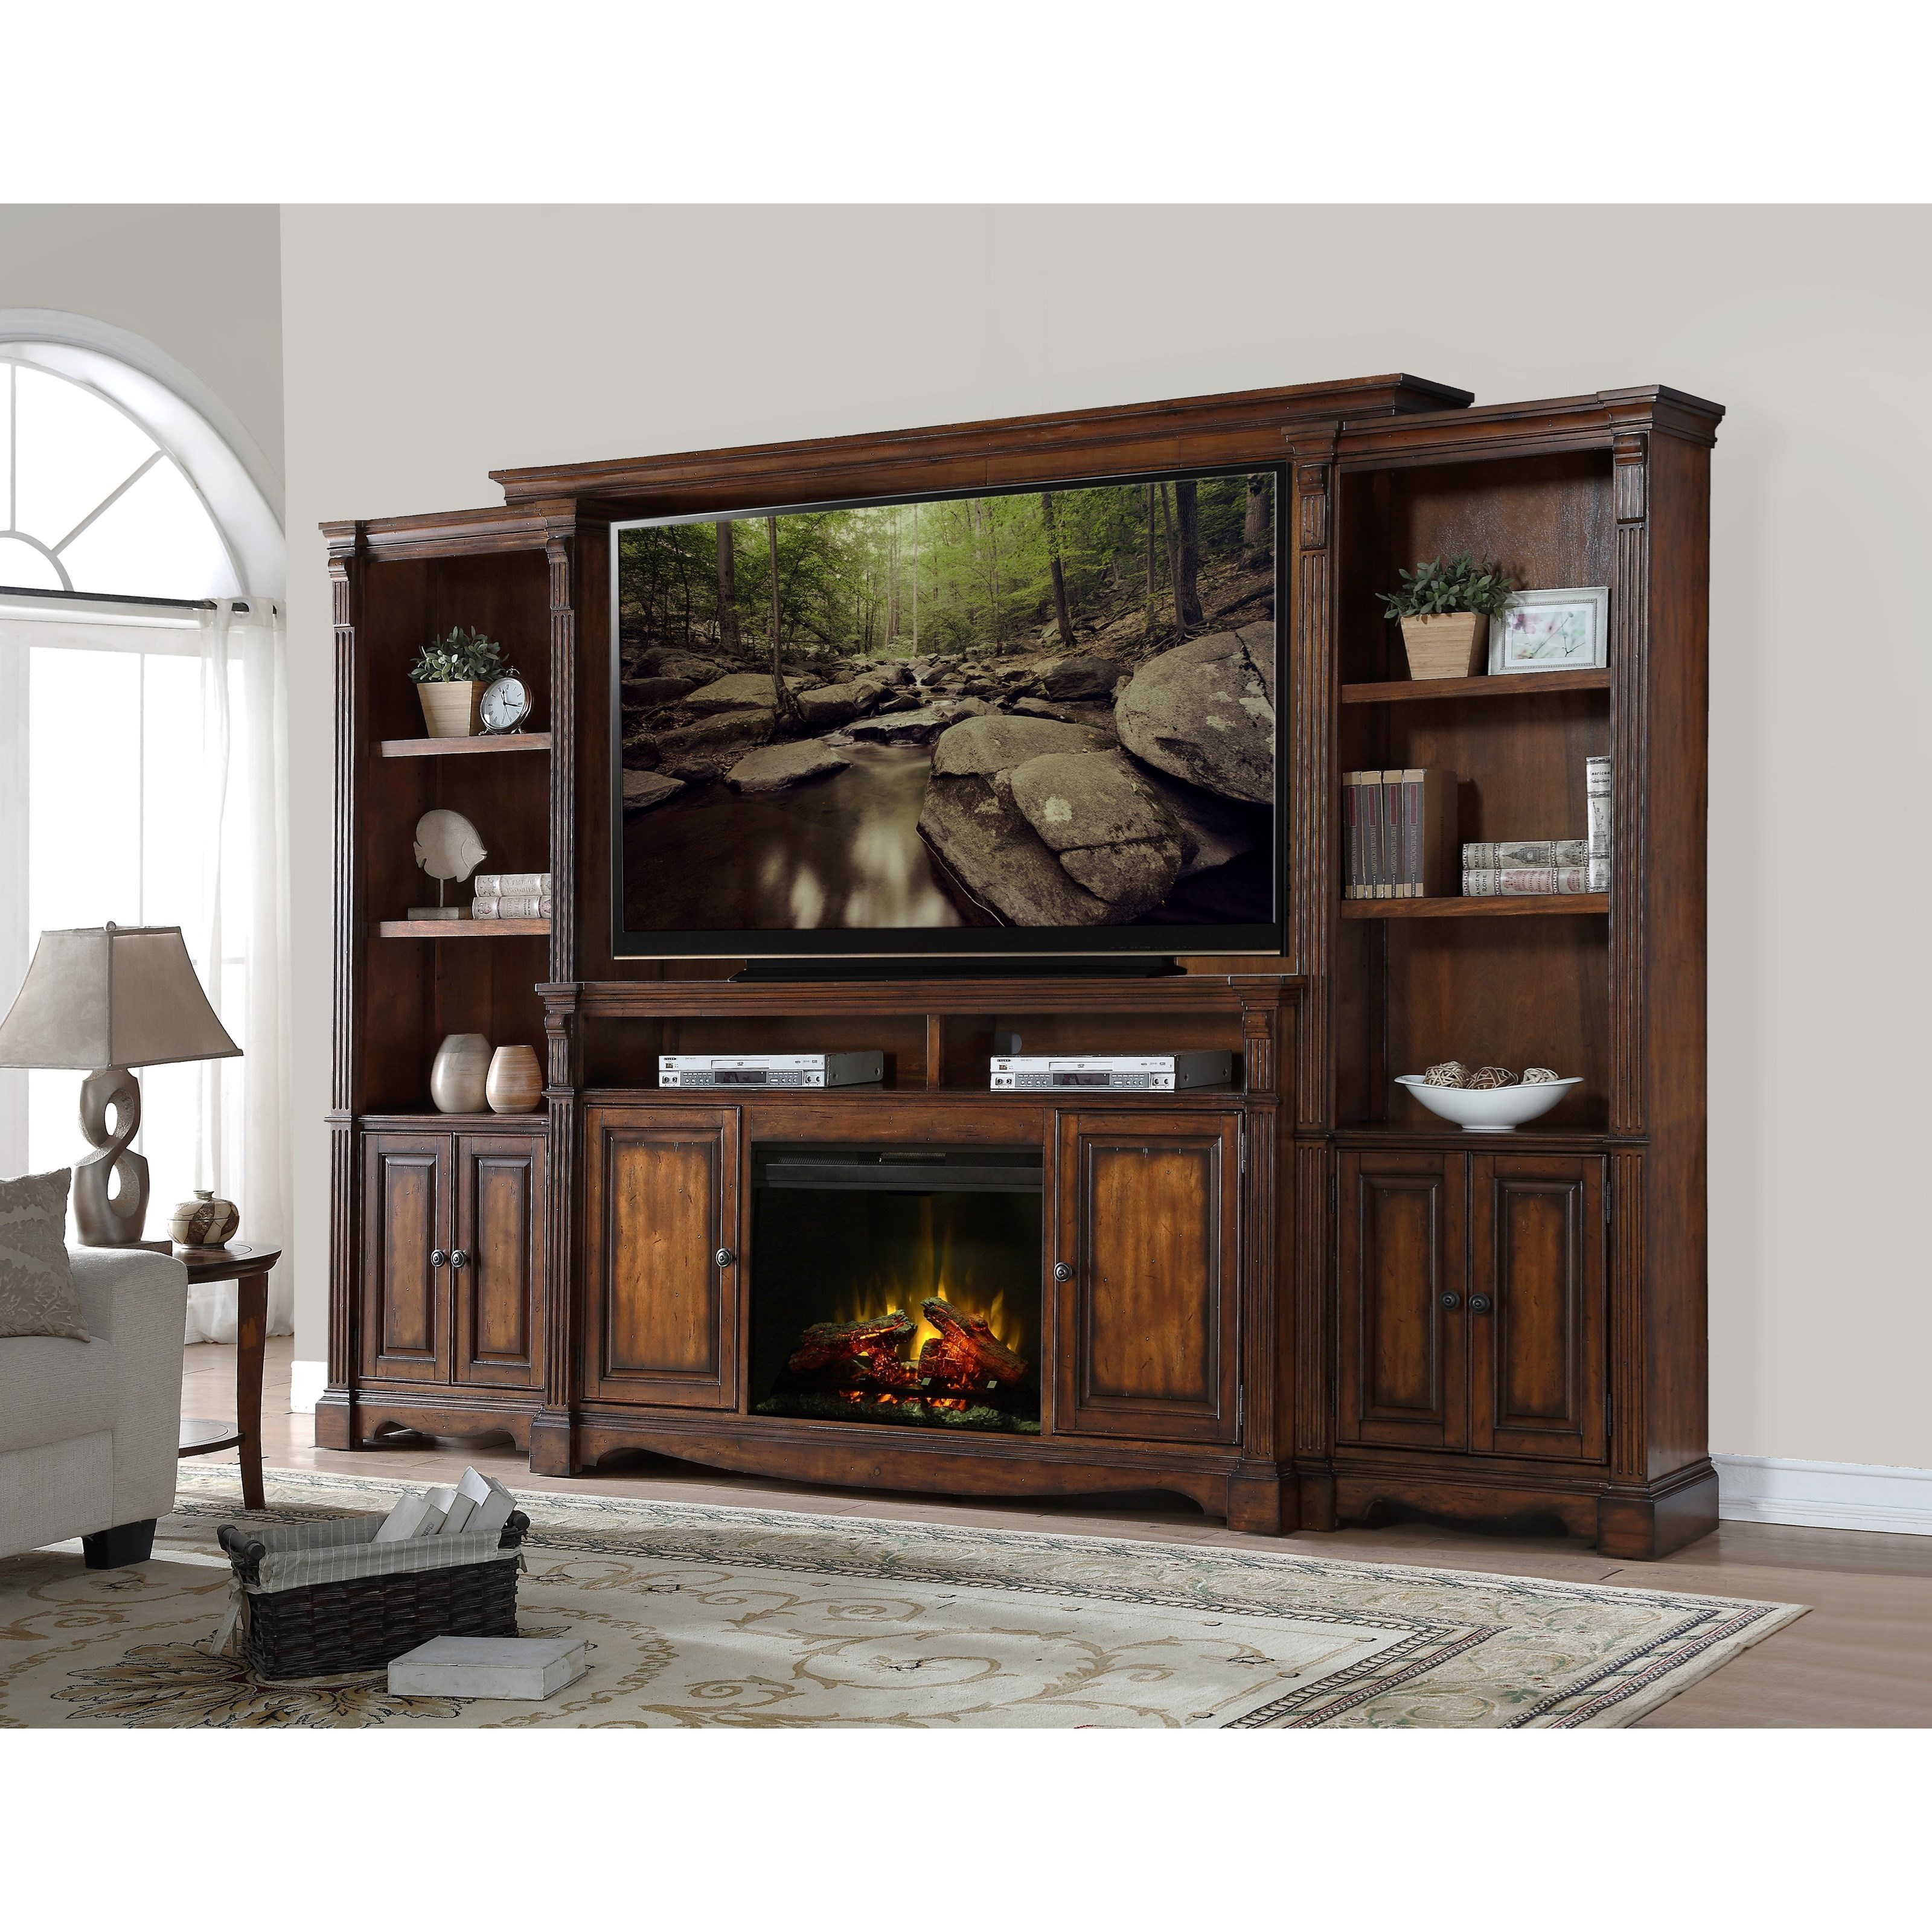 club unique tufted frame elegant center electric electricfireplace of napoleon gray leatherette fireplace media upholstery